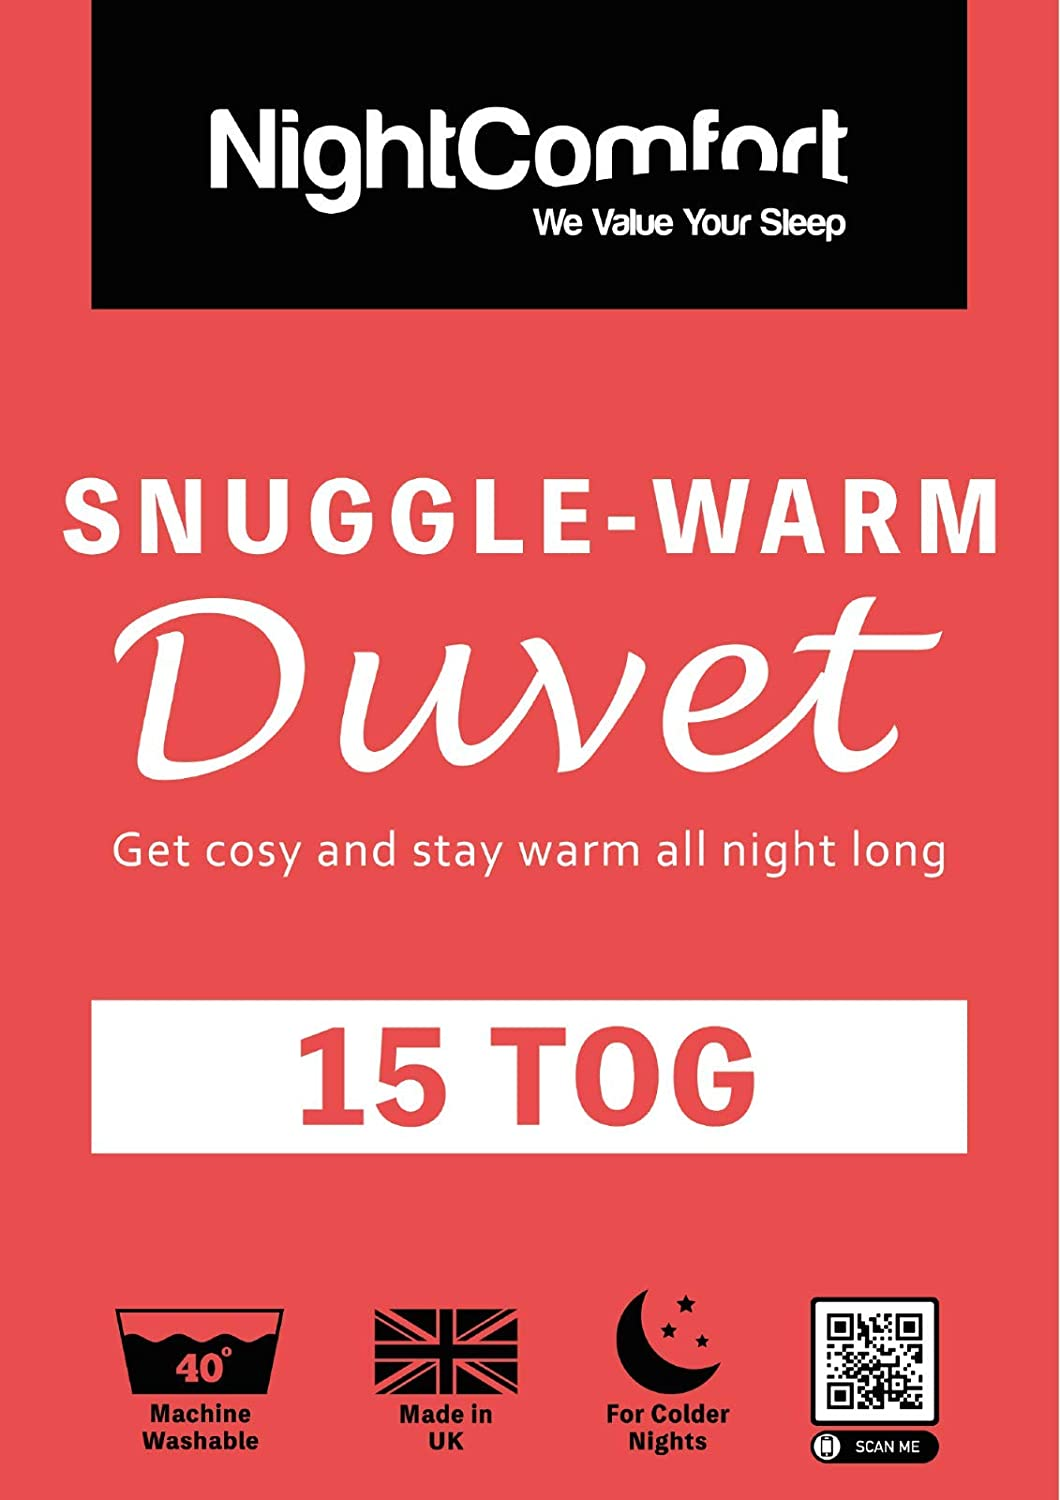 Double Night Comfort 15 Tog Snuggle Ultra Warm Duvet Winter Quilt Single Double King Super King Size